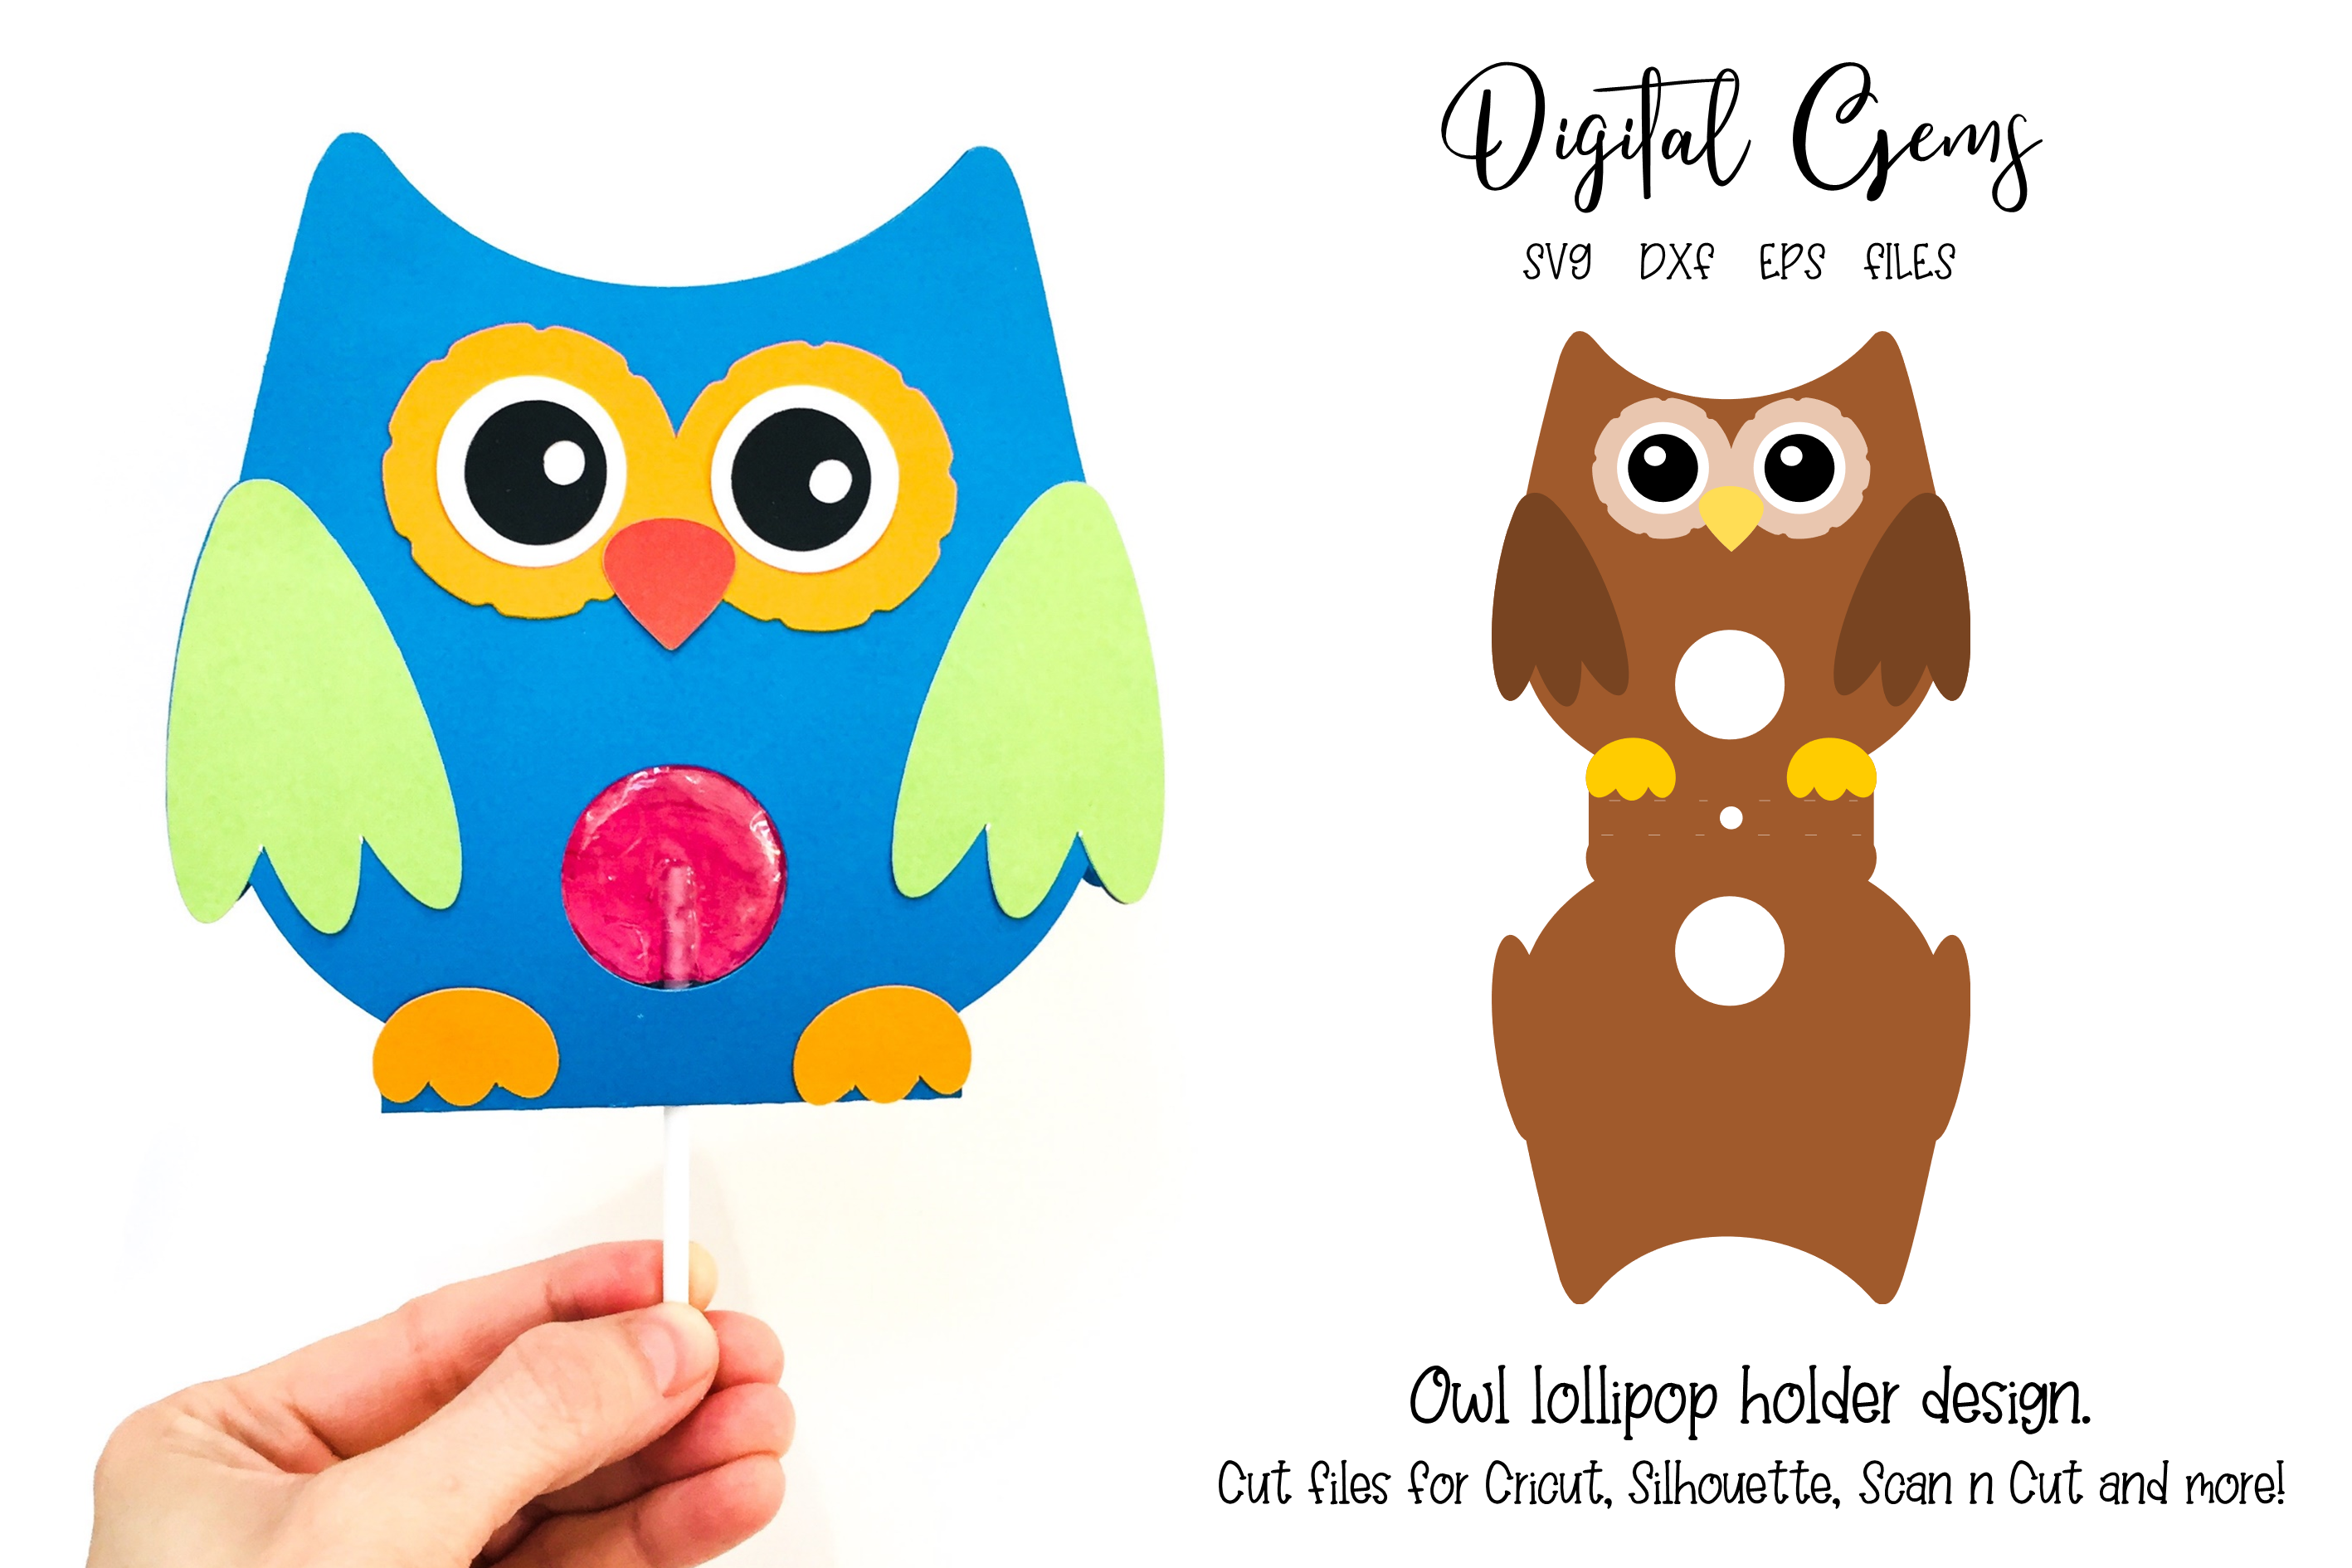 Download Free Owl Lollipop Holder Design Graphic By Digital Gems Creative for Cricut Explore, Silhouette and other cutting machines.